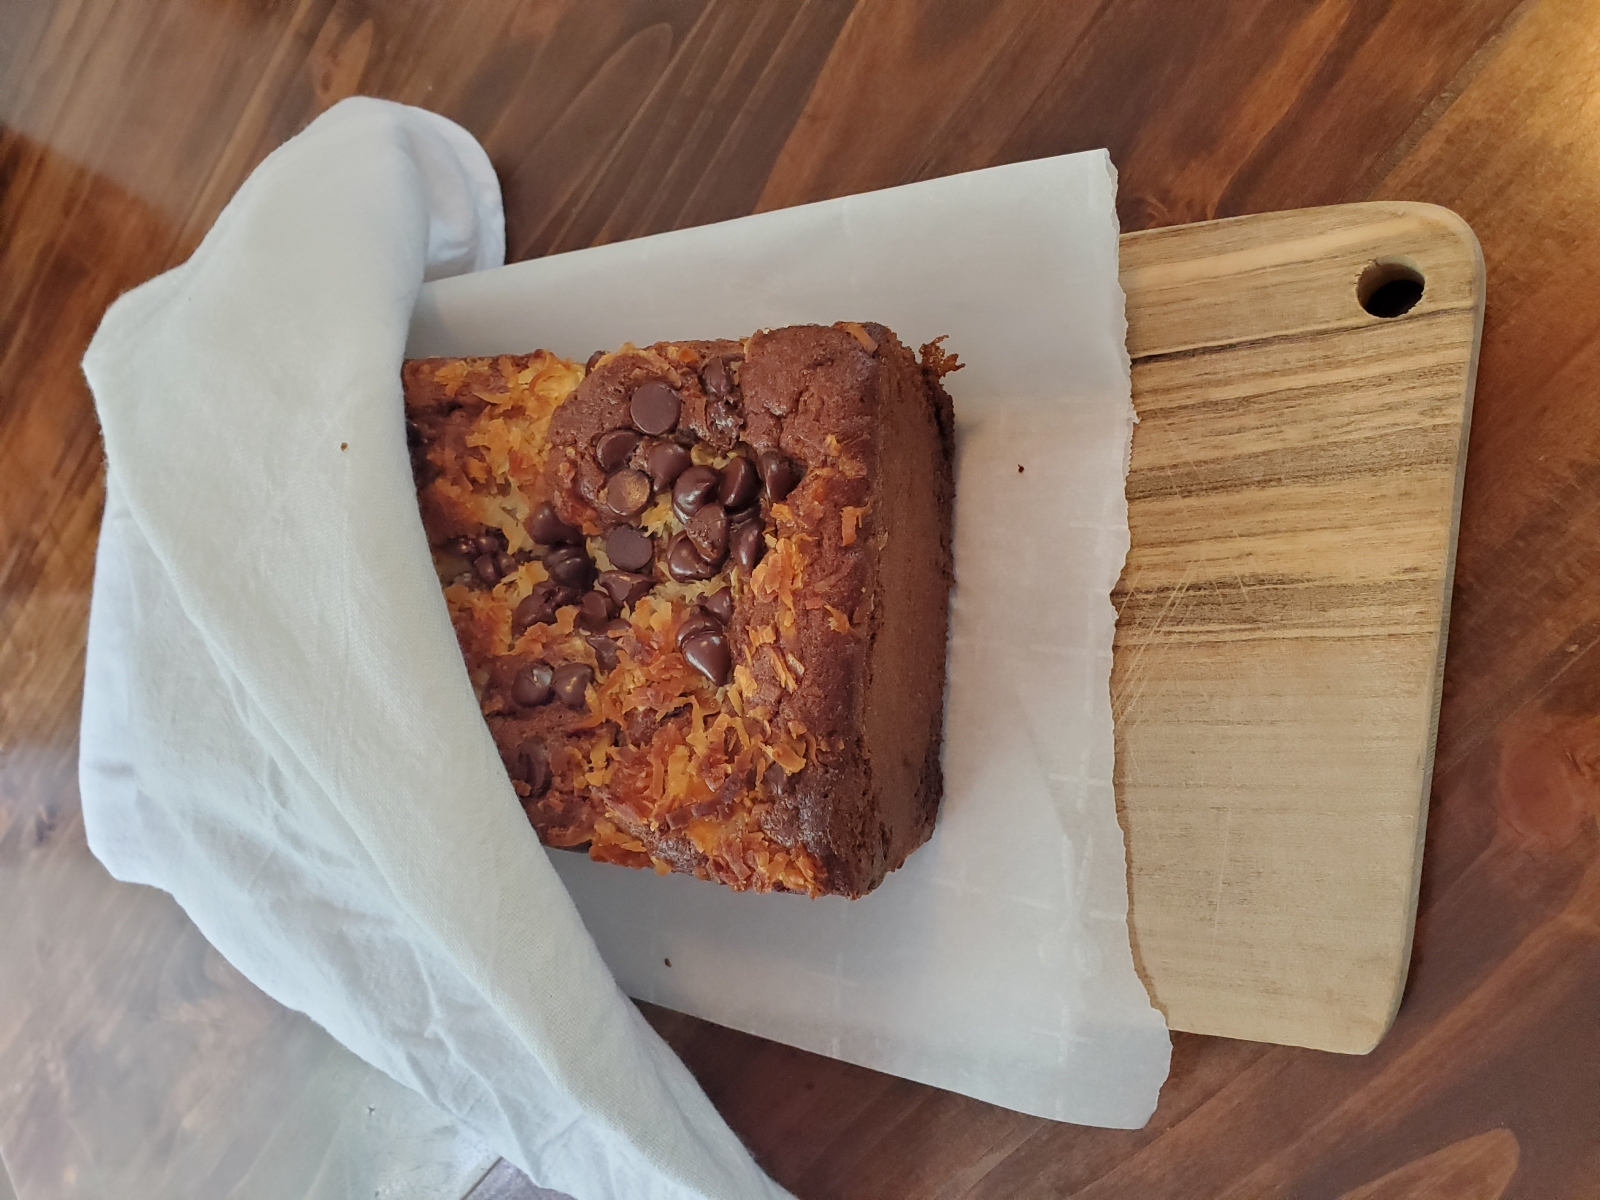 Image showing freshly baked tropical banana bread without glaze